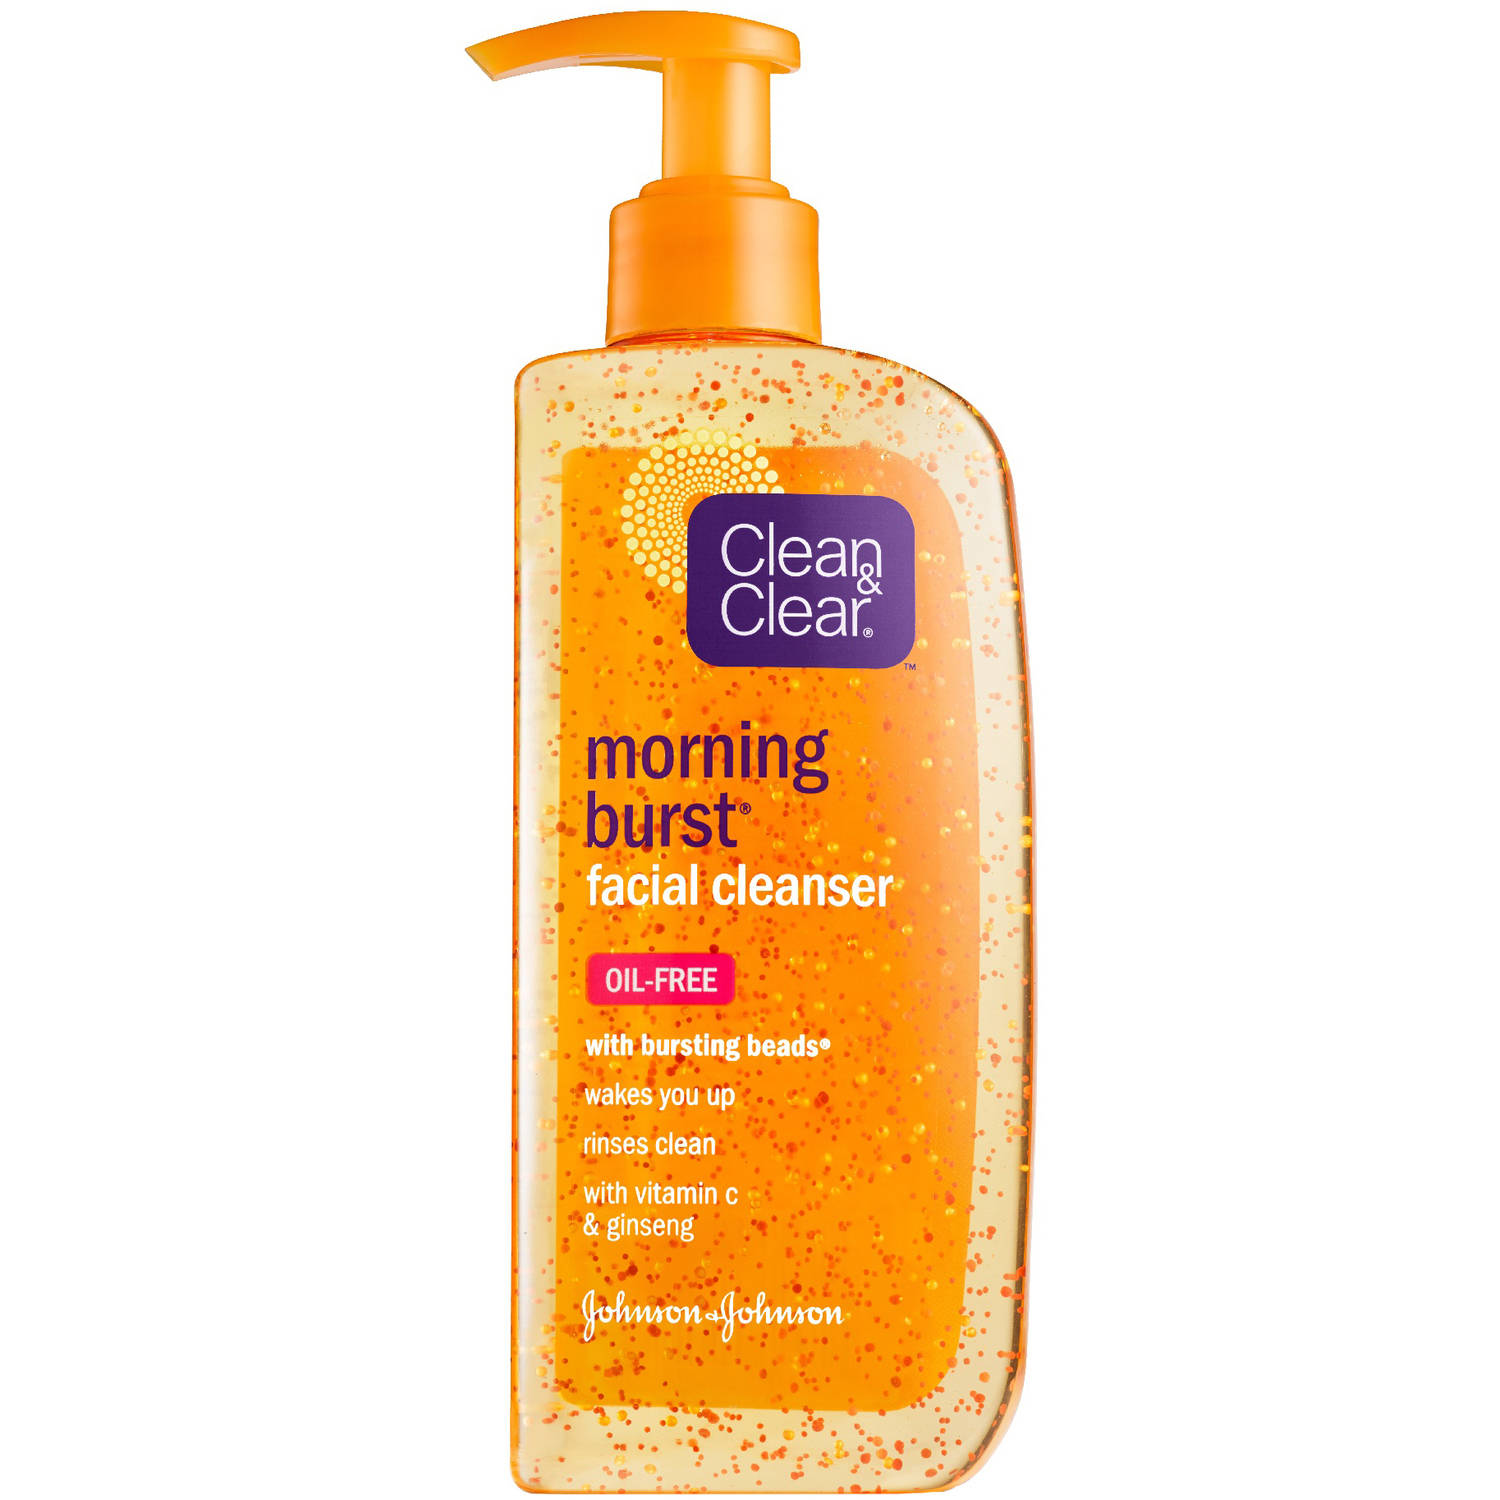 Clean & Clear(R) Morning Burst(R) Facial Cleanser Cleansers 8 Fl Oz